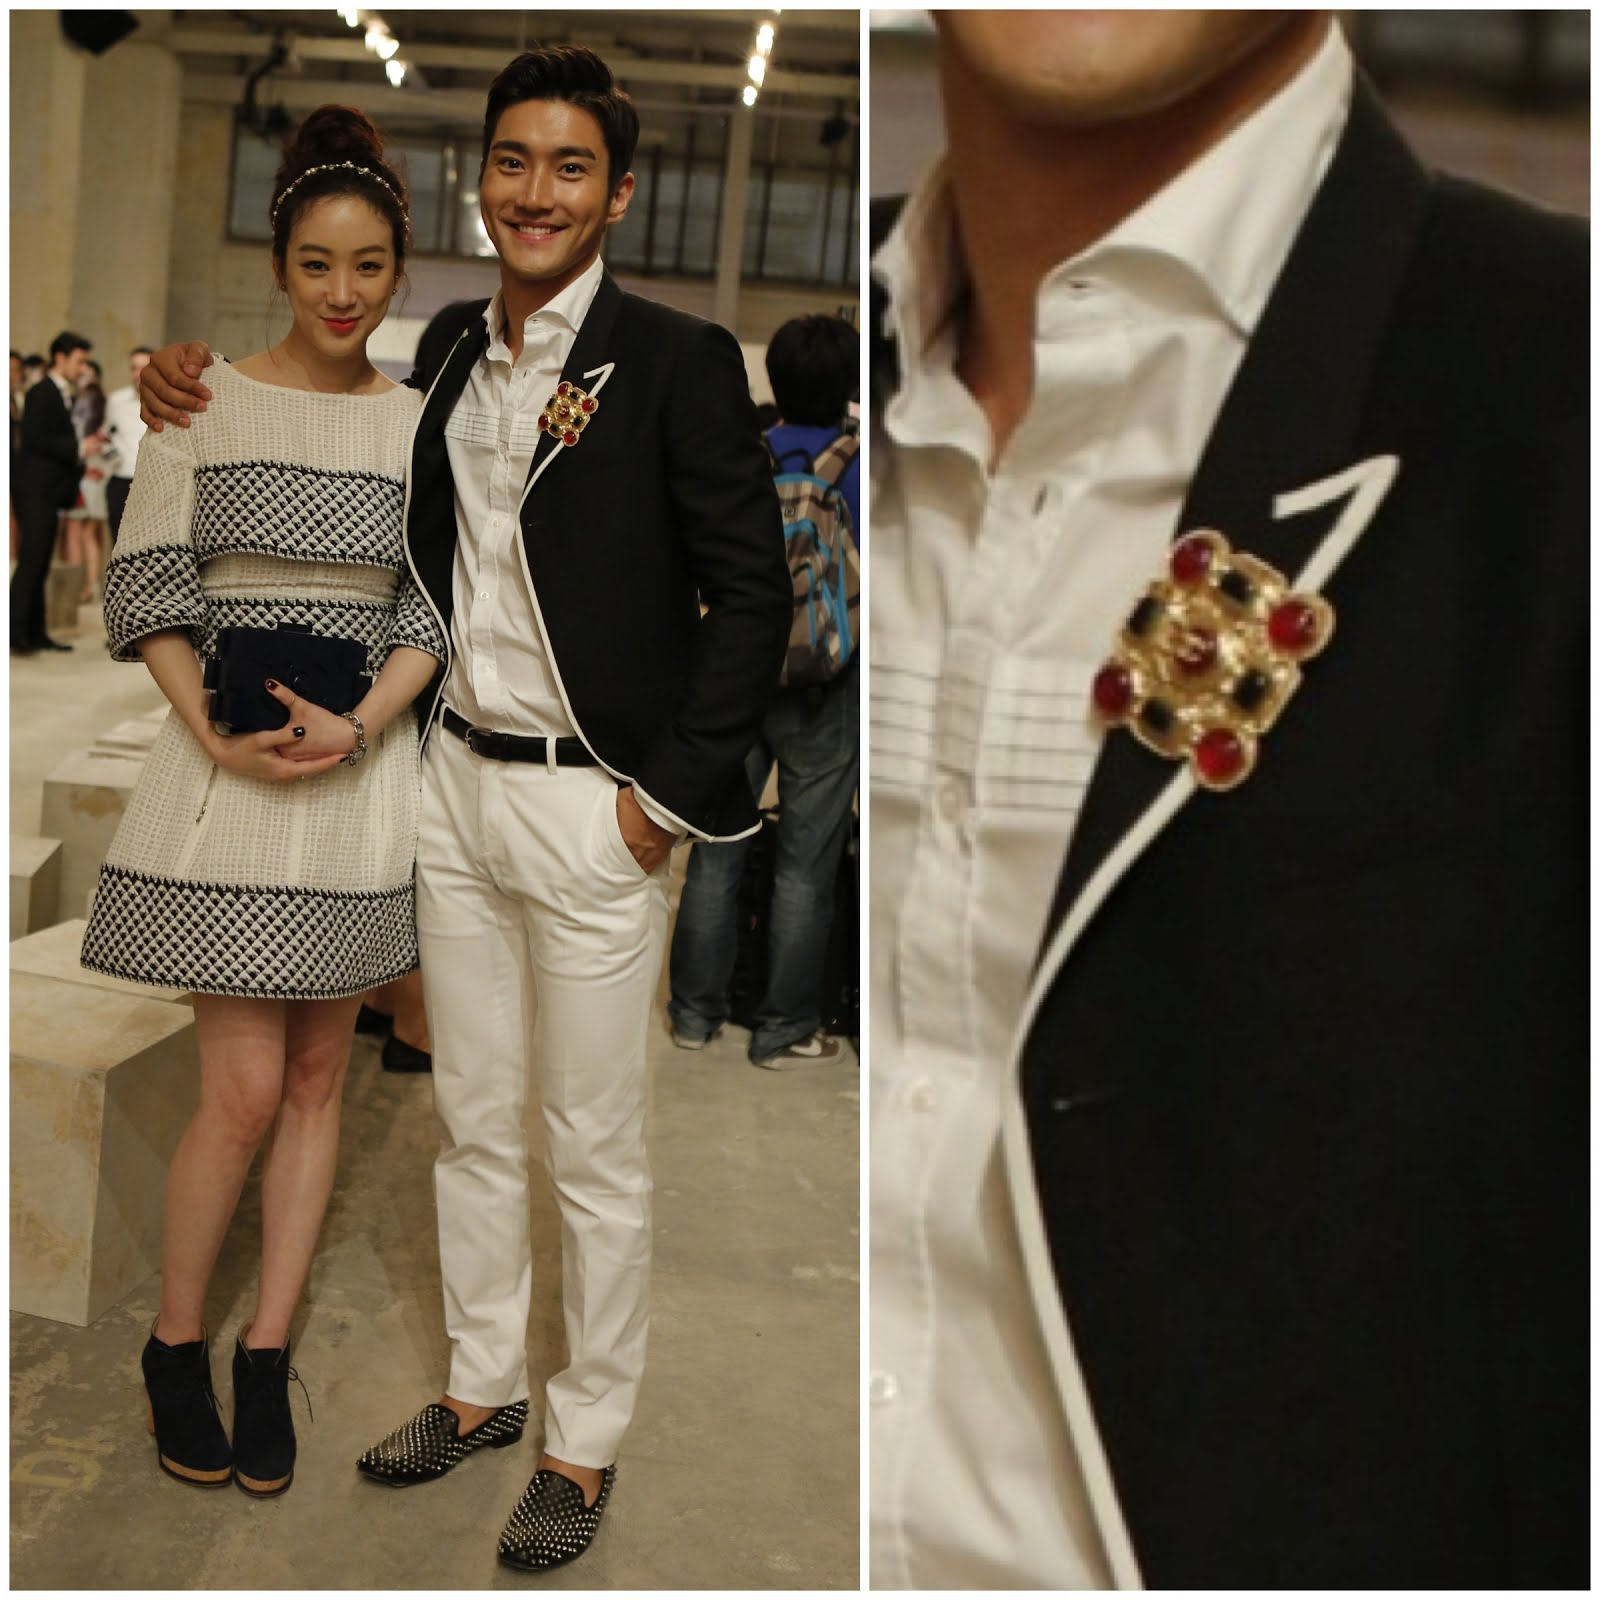 00O00 Menswear Blog http://00O00.blogspot.com : Siwon Choi [崔始源, 최시원] in Saint Laurent menswear contrast trim blazer Spring Summer 2013 - Chanel Cruise 2013/2014, Singapore May 9th 2013